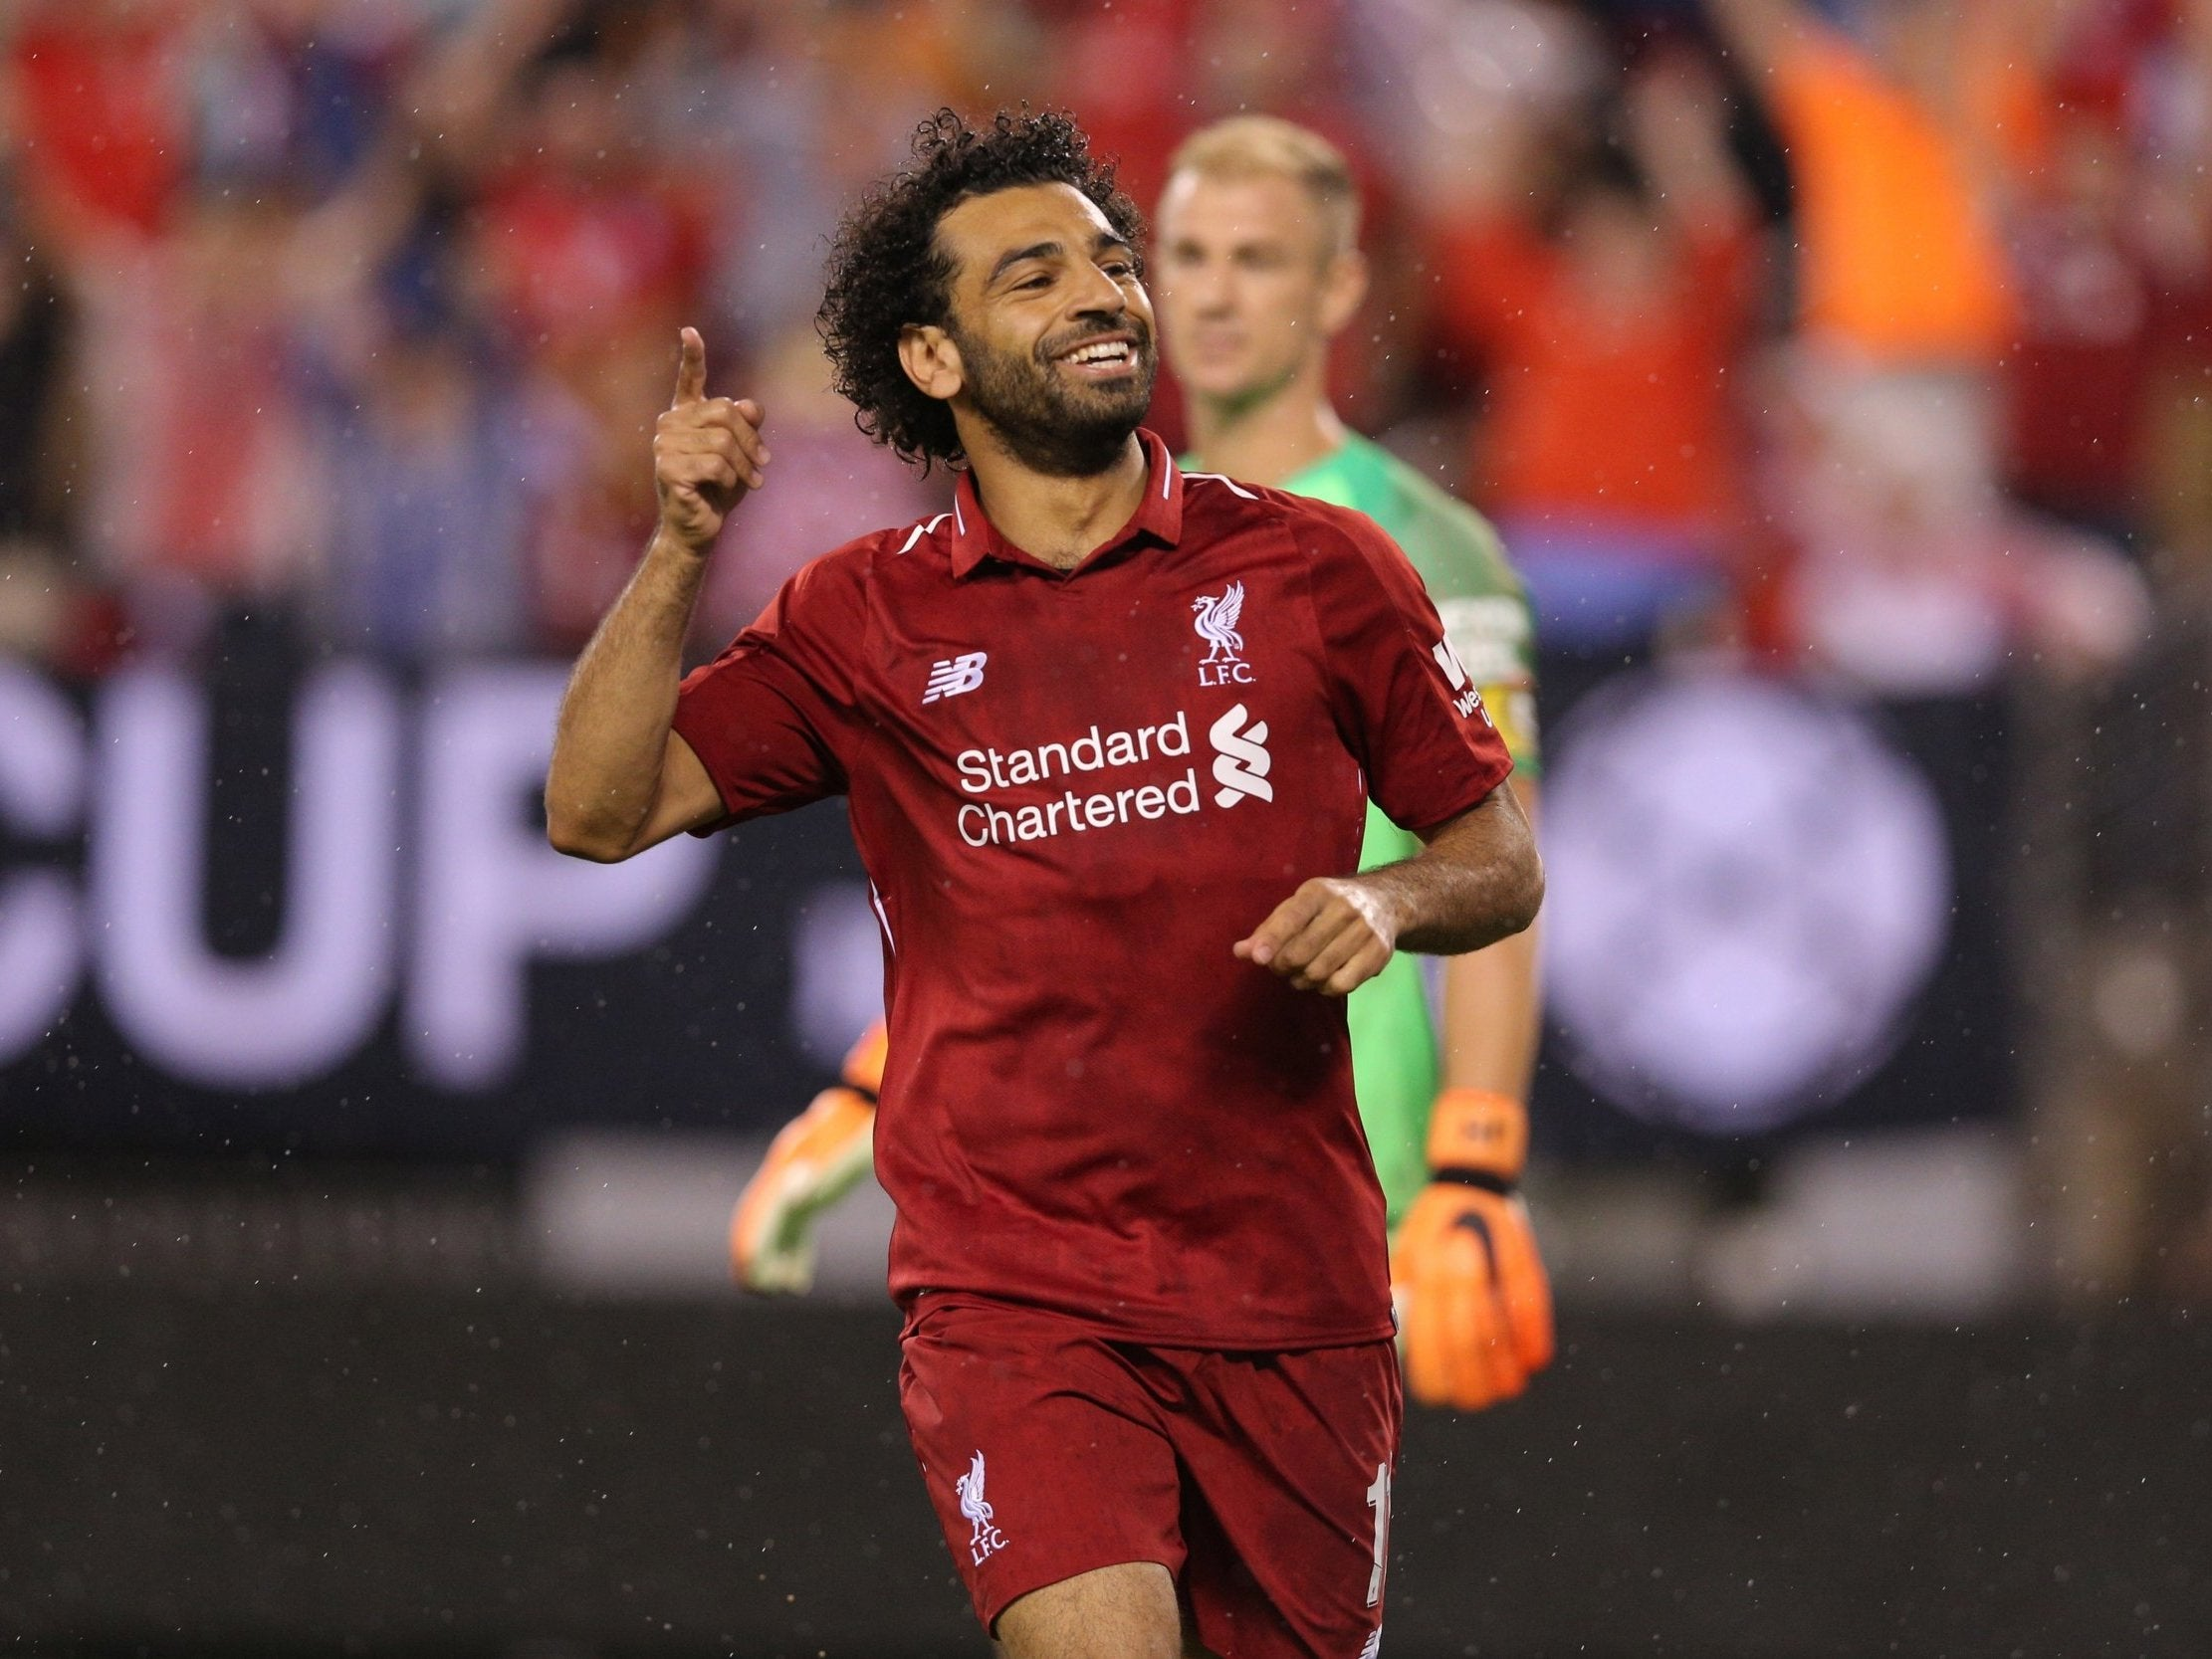 Mohamed Salah up and running in just 35 seconds to dispel any injury fears as Liverpool beat Manchester City